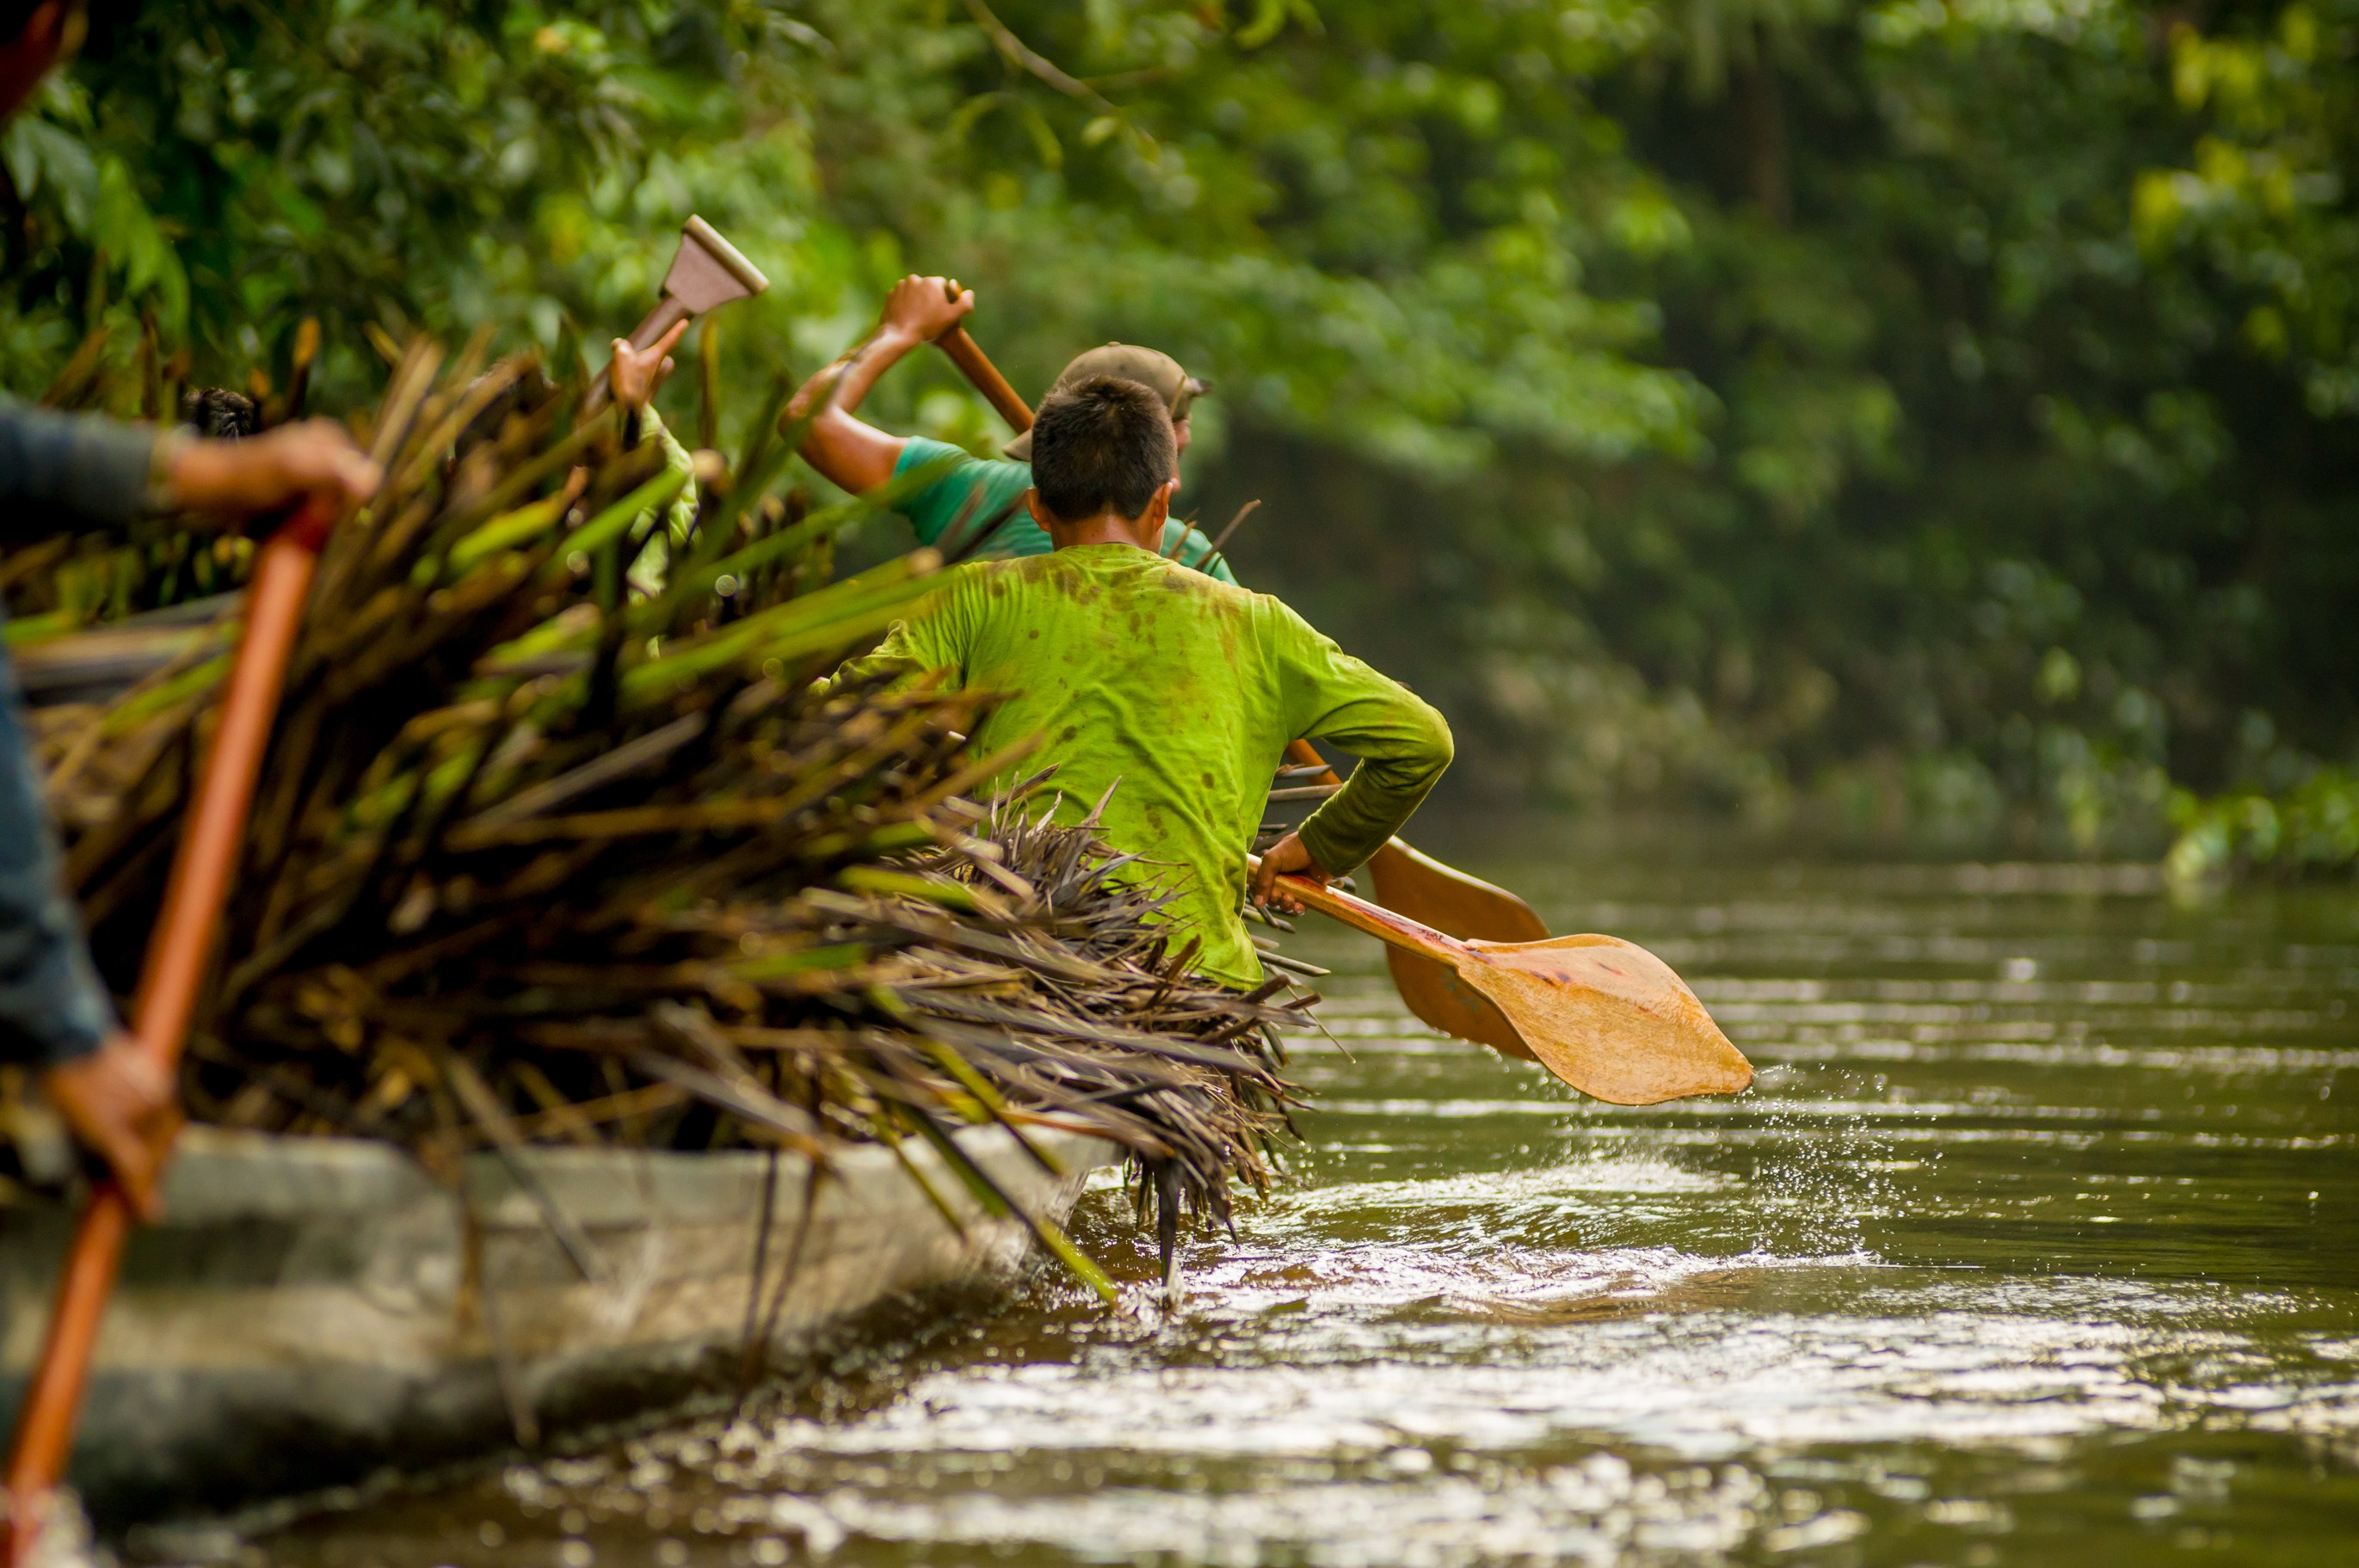 Canoeing through the Amazon River in Brazil